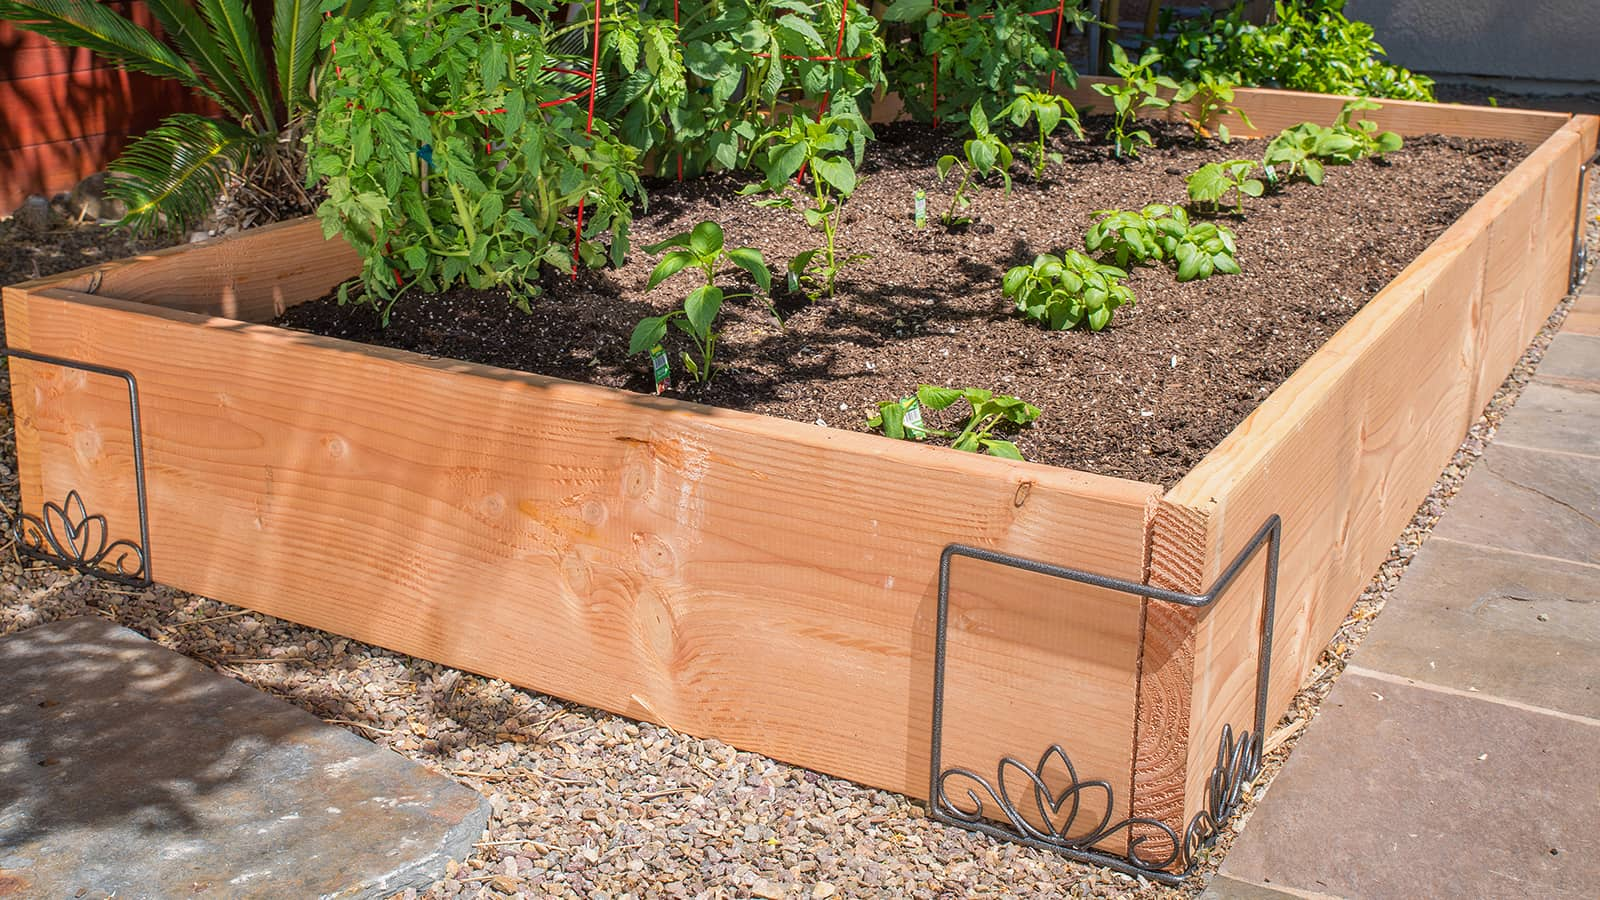 Best Methods for Raised Bed Gardening